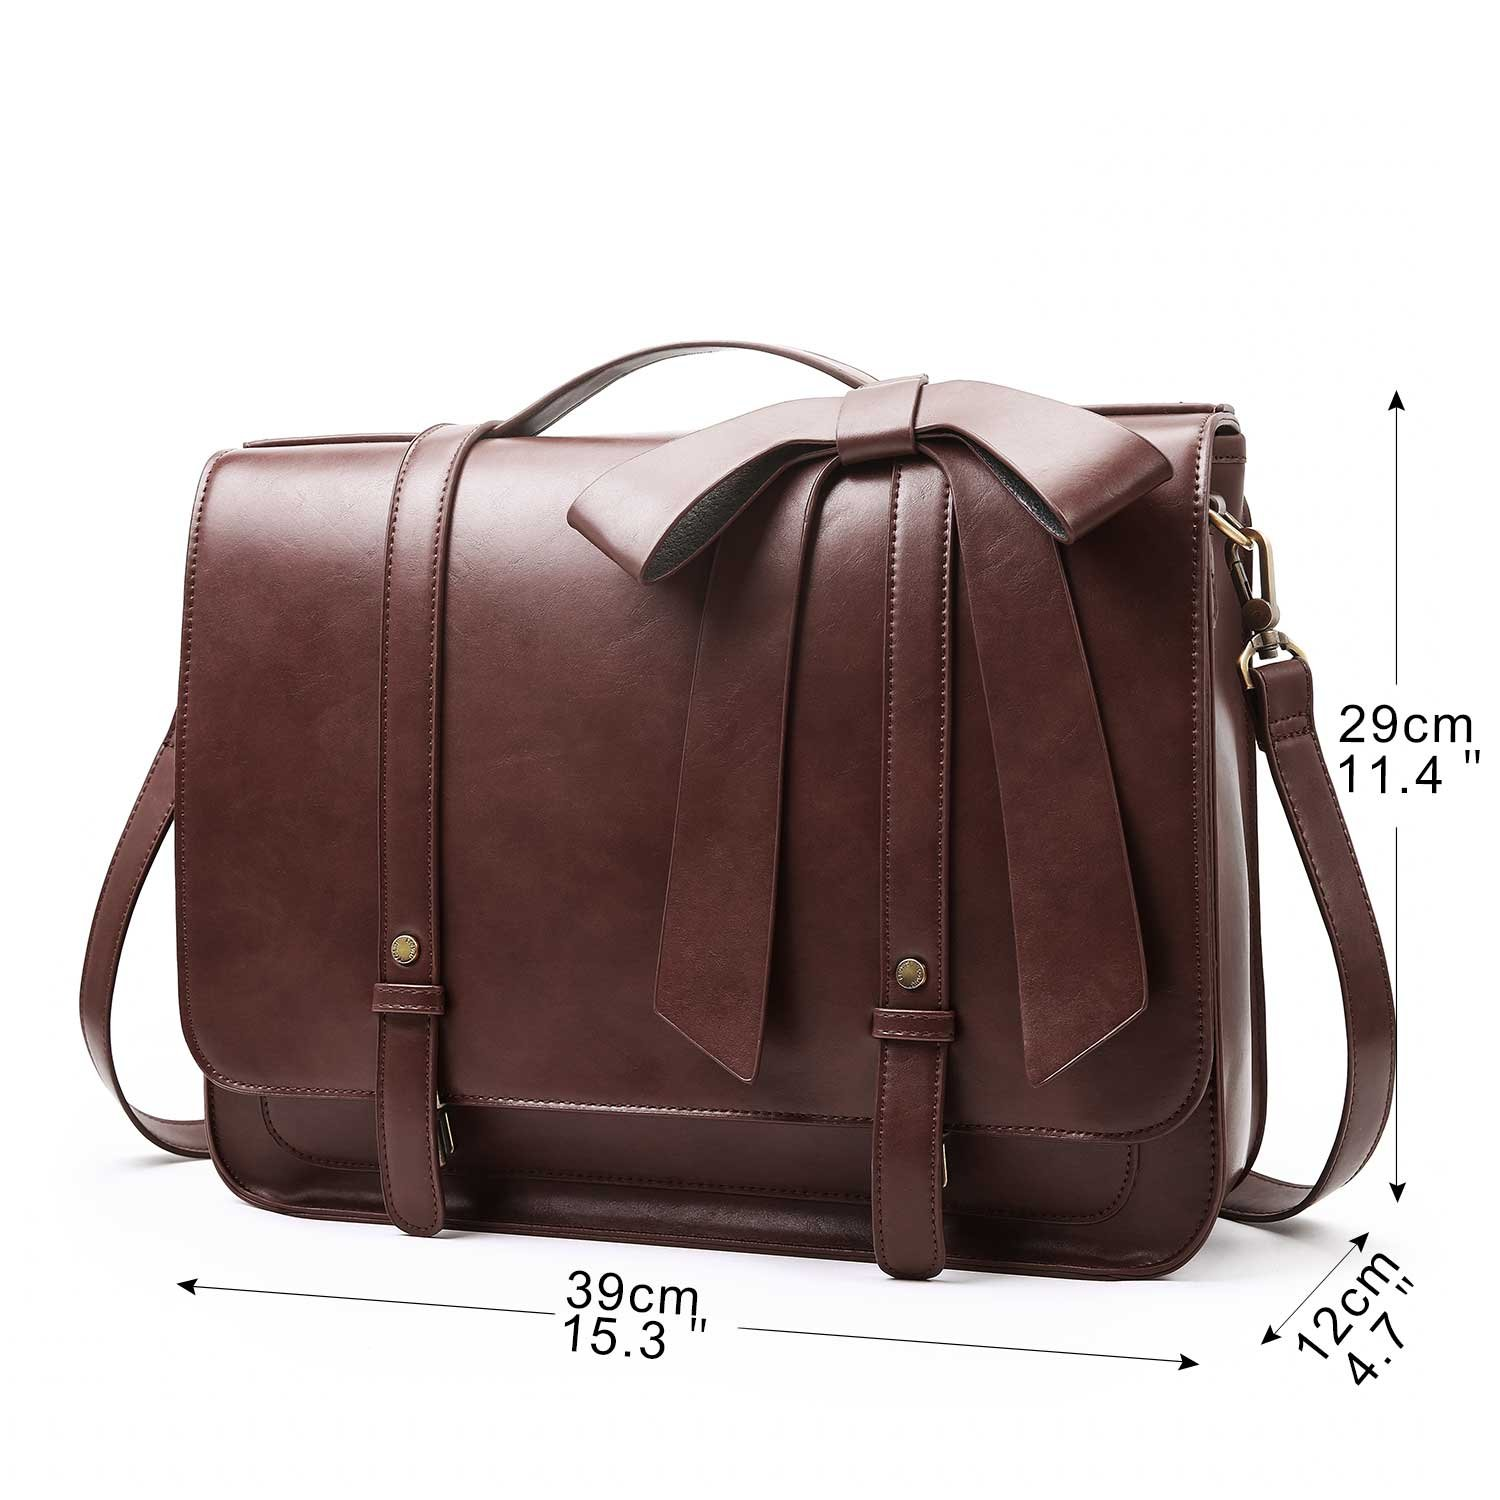 ECOSUSI Ladies Briefcase PU Leather Laptop Backpack Shoulder Satchel Computer Bag with Detachable Bow, Coffee by ECOSUSI (Image #7)